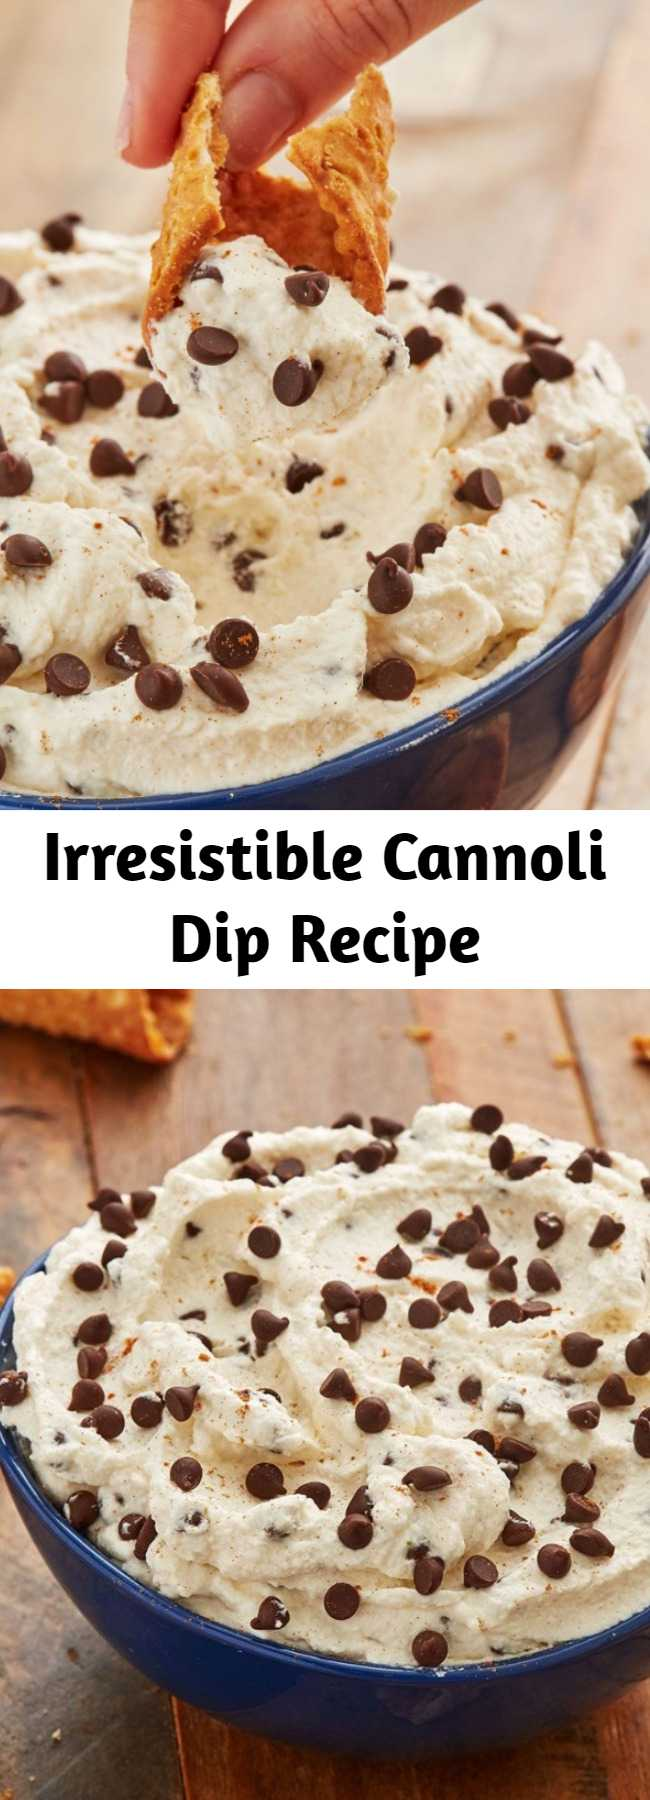 Irresistible Cannoli Dip Recipe - Holy cannoli, this dip is delicious! Here's how to make this easy and quick dessert dip for any holiday party.